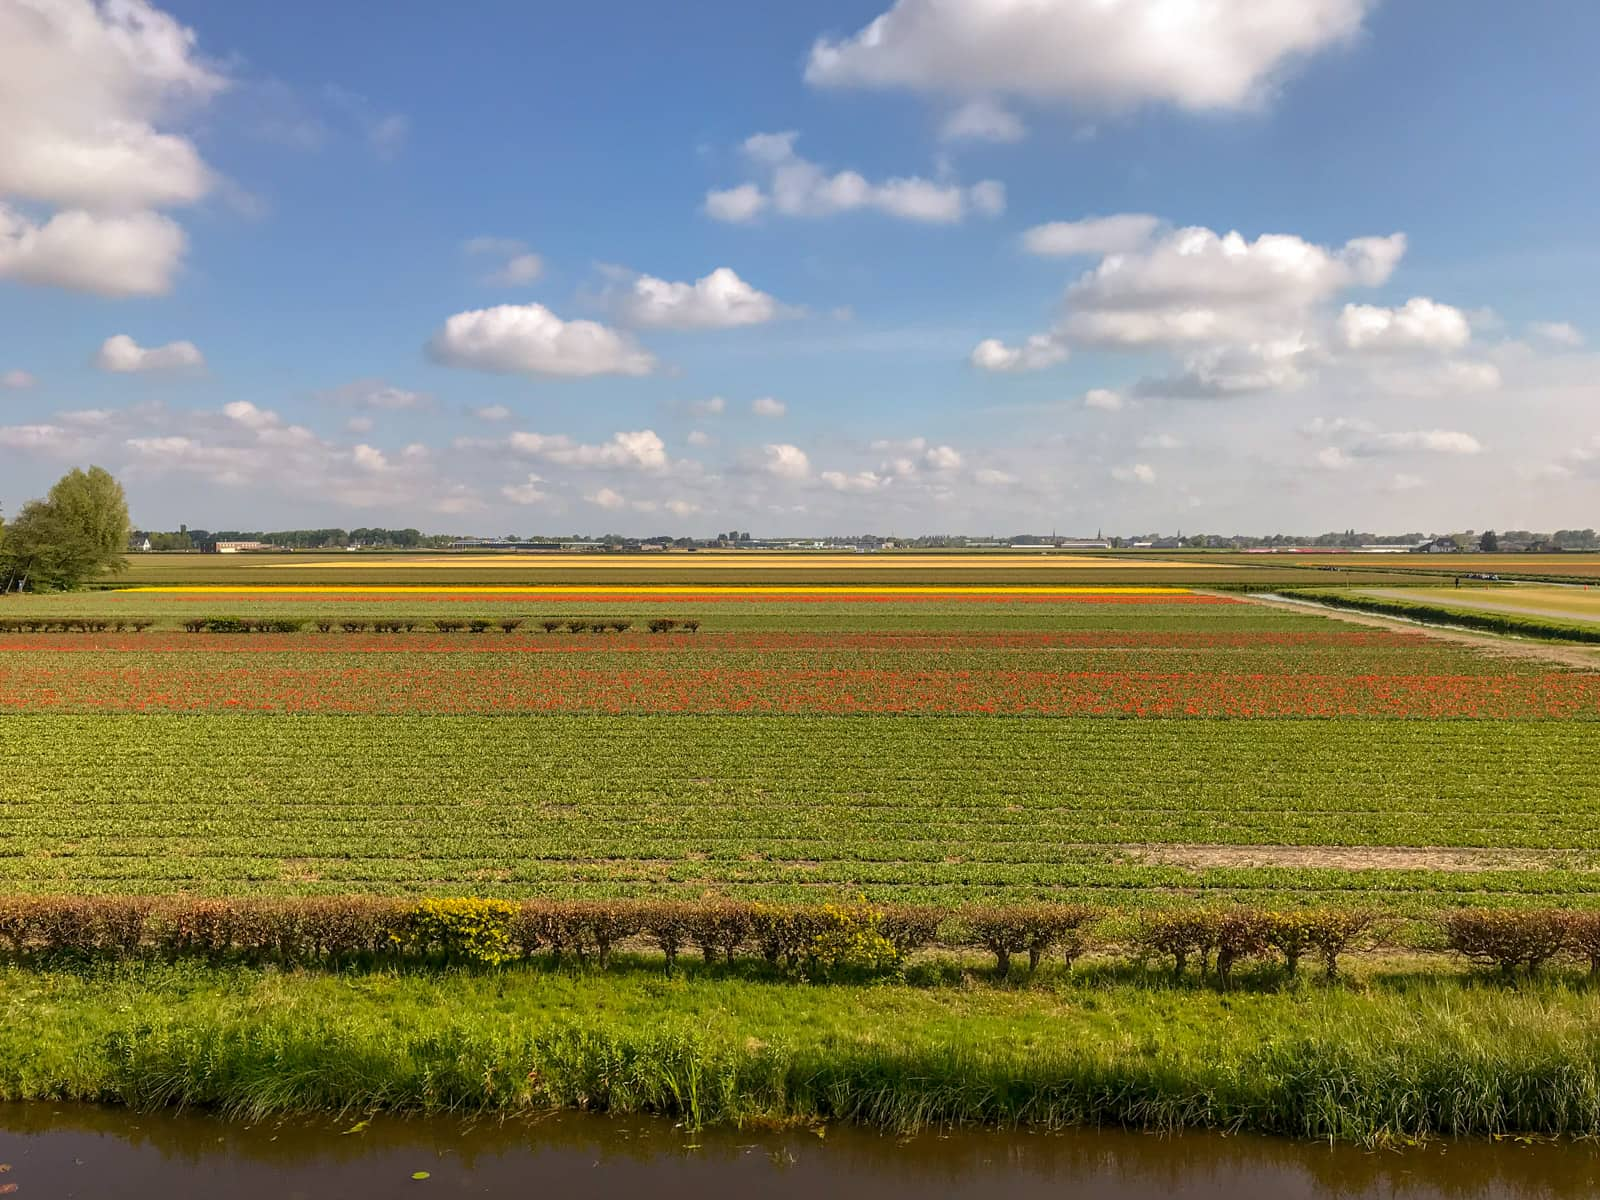 Wide, bright fields of tulips in red, and yellow, seen from a distance. The sky is blue with some small clouds